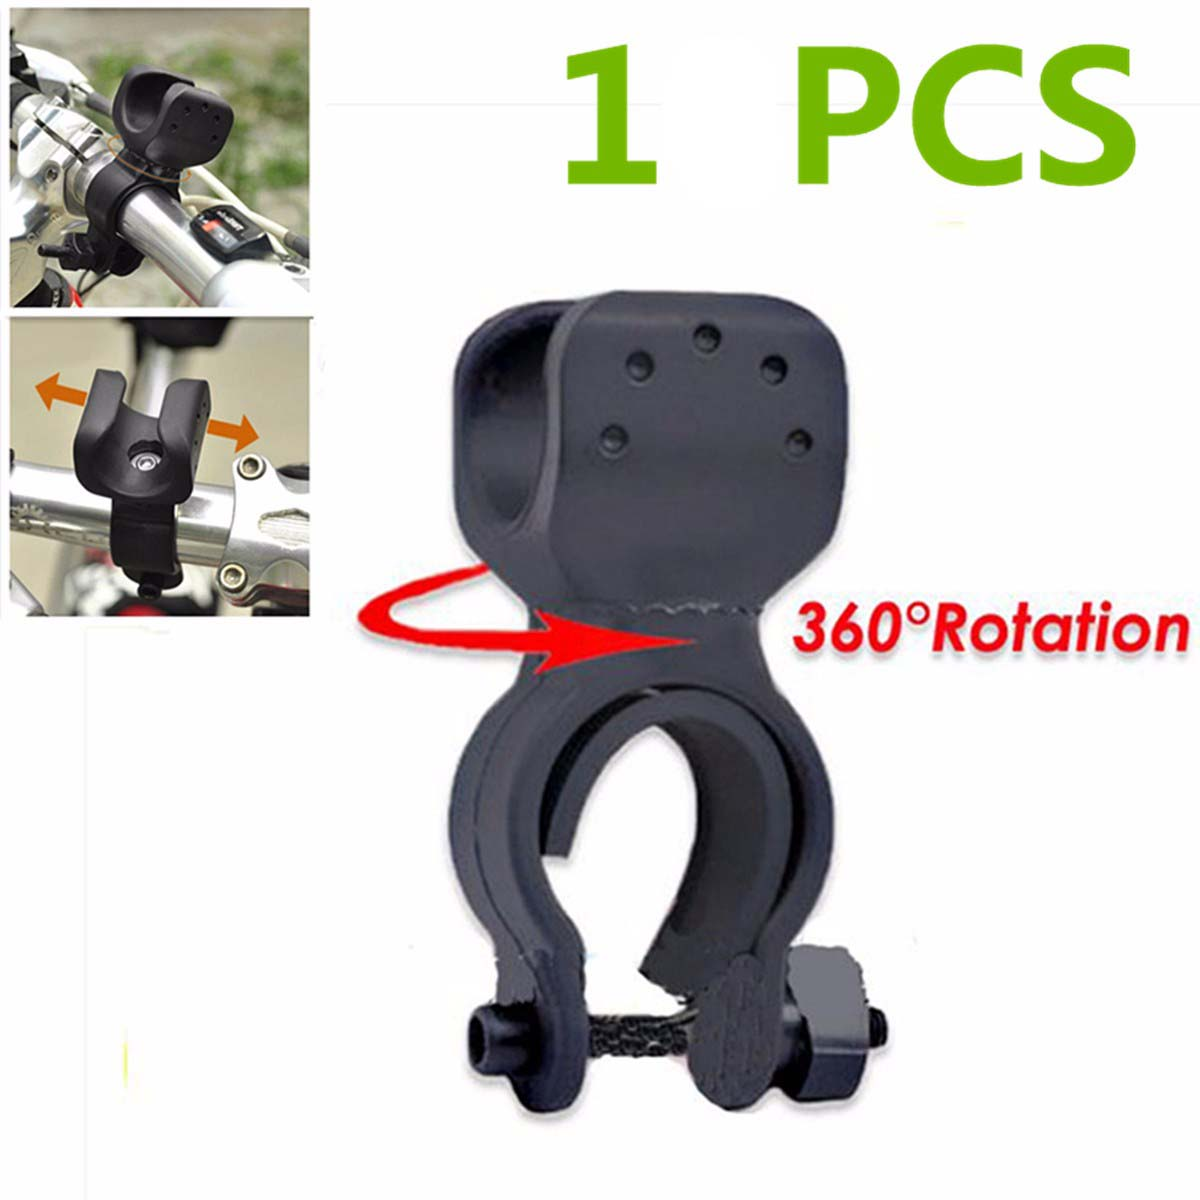 20.5cm Black Bike Bicycle LED Flashlight Torch Handle Holder Mount Clip With Adhesive Strap